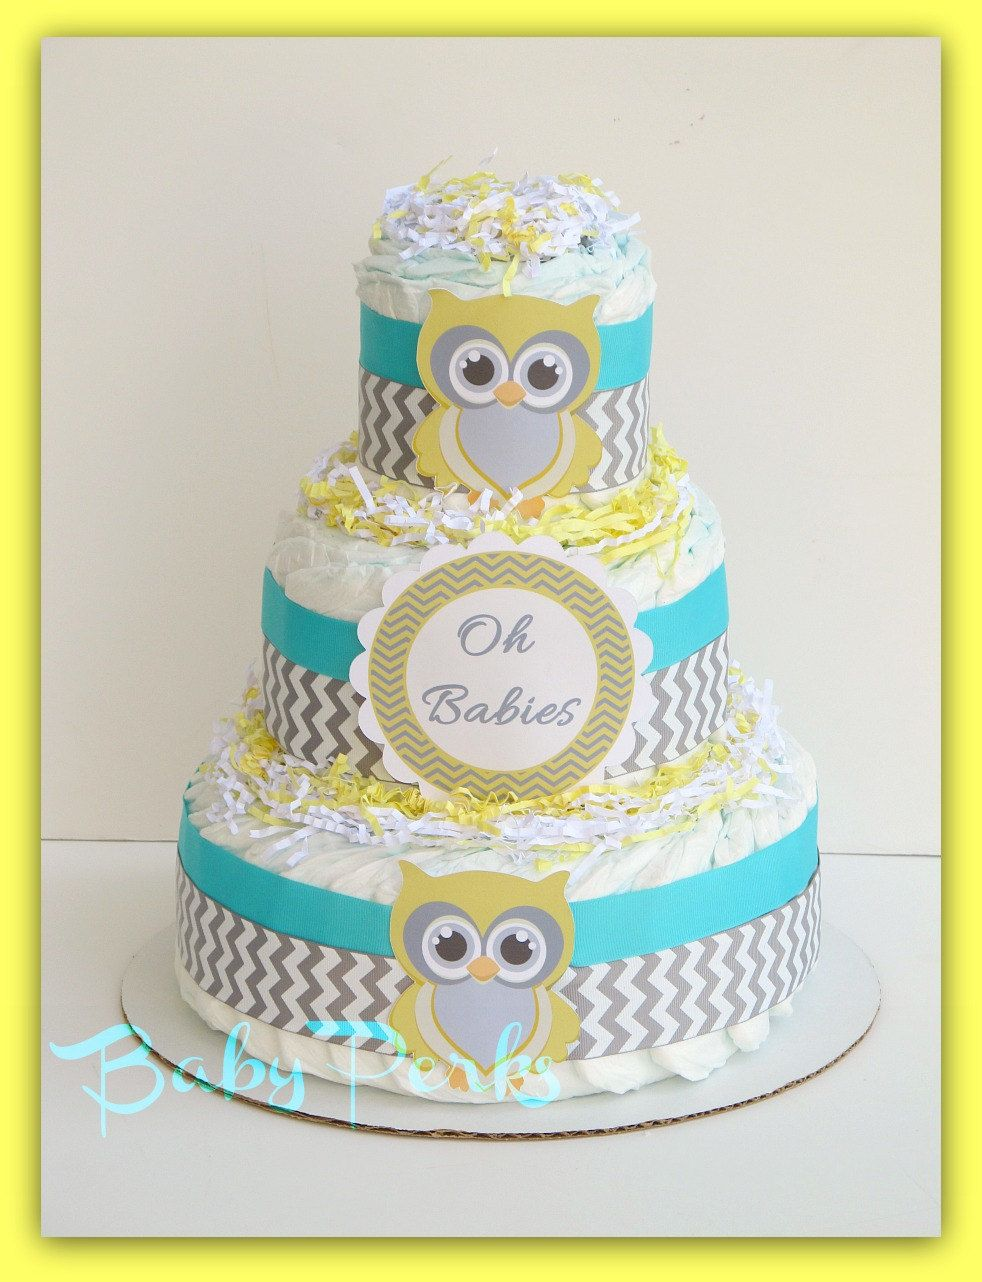 Turquoise Baby Shower Decorations Reserved Listing For Claudine P Turquoise Yellow Turquoise And